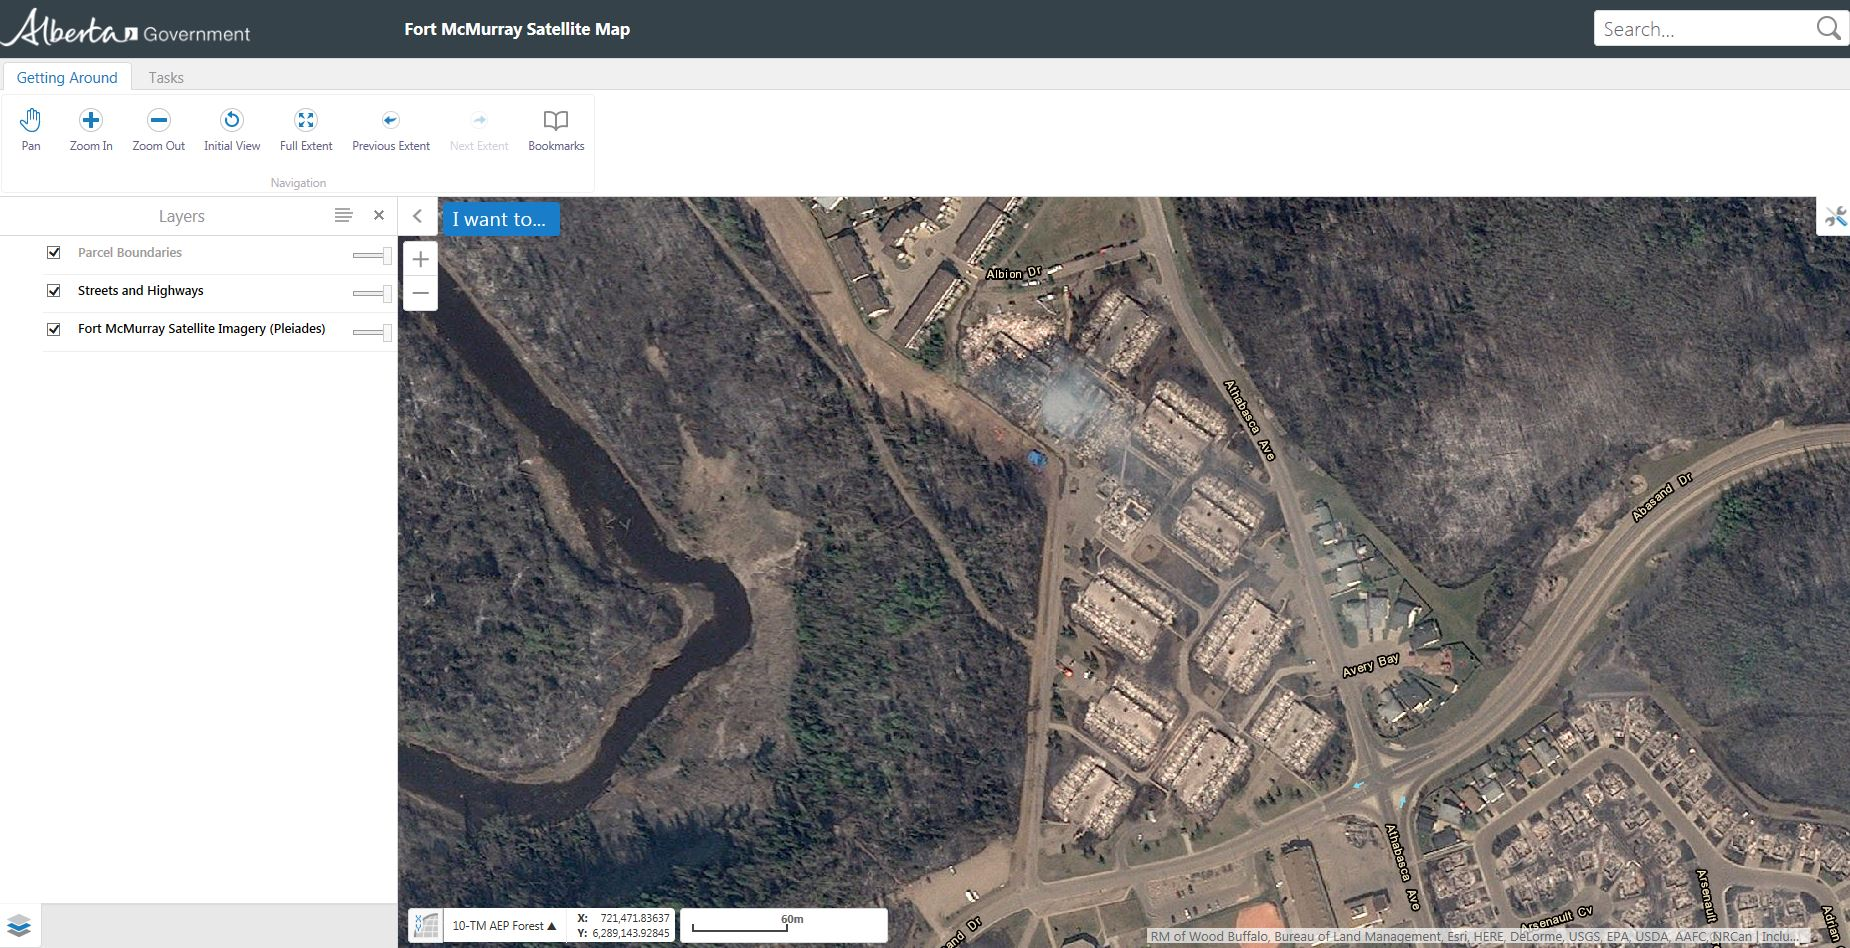 Fort Mc Murray - Government Alberta - Wild fires - GIS application - satellite Pleiades - SIG - Burnt areas - Dommages - Zones brulées